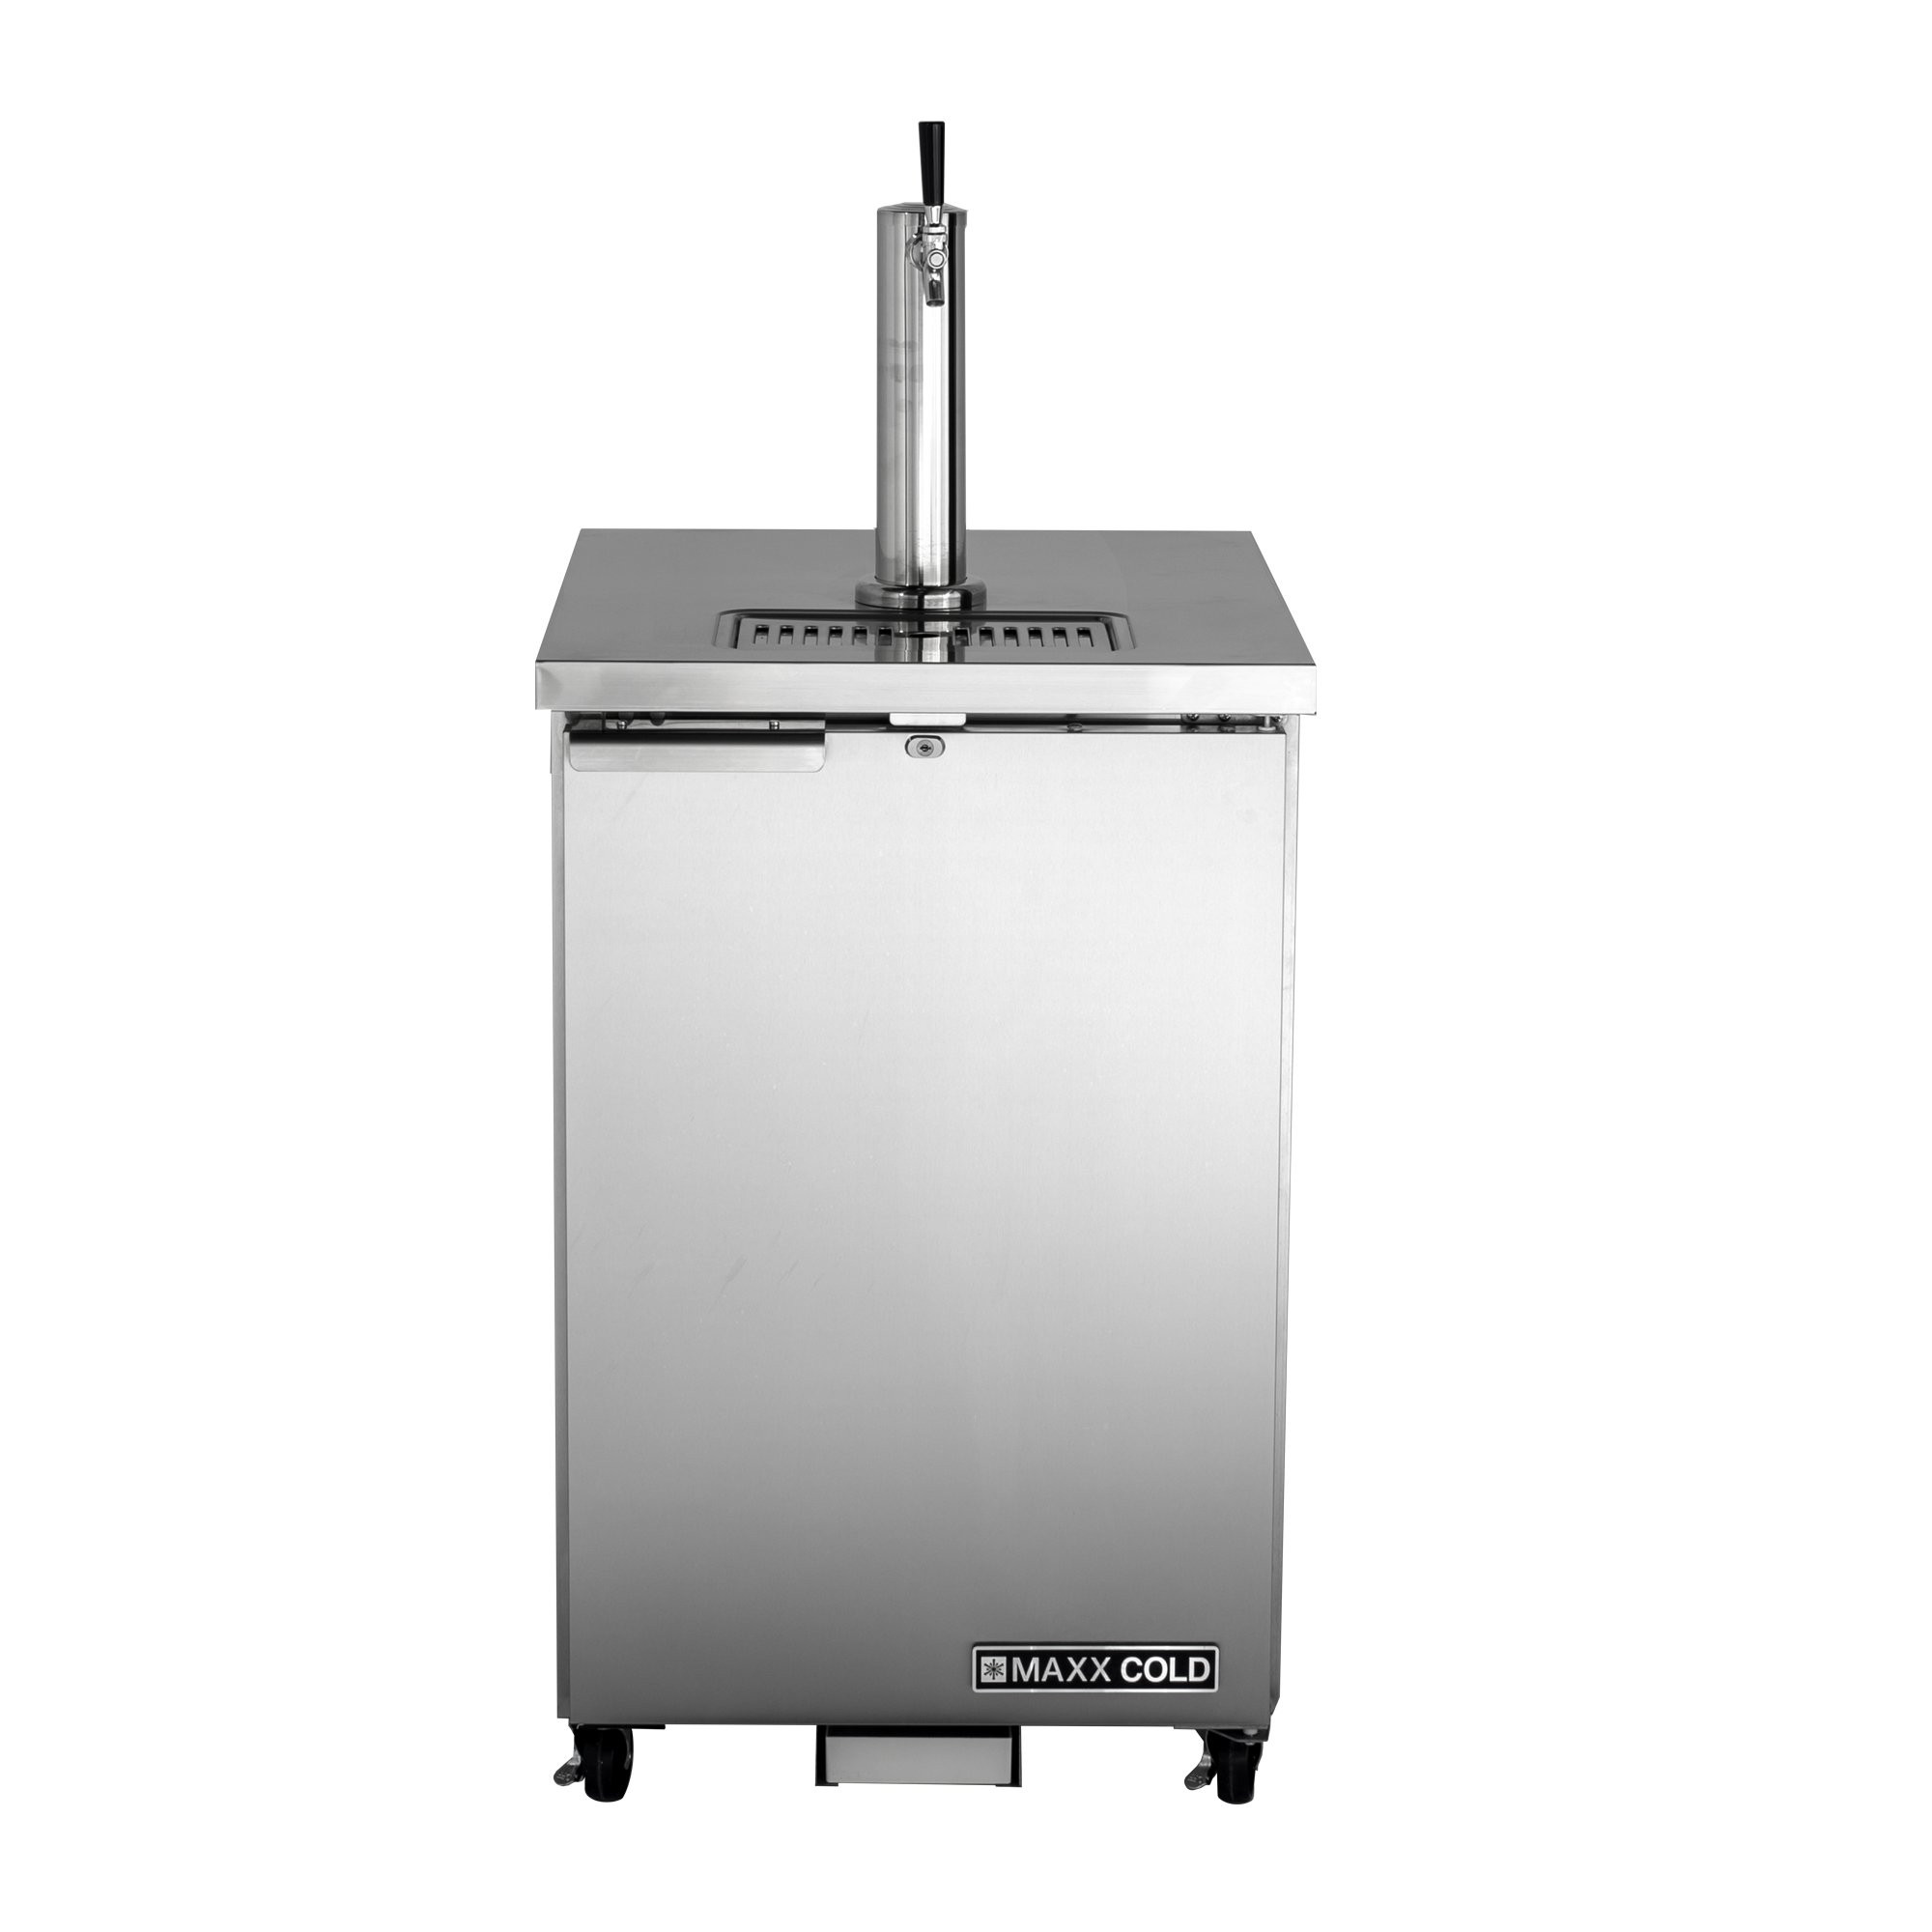 Maxx Cold MXBD24-1S Commercial Stainless Steel NSF Bar Direct Draw Kegerator Beer Dispenser Cooler with 1 Single Tower Tap Holds 1 Half 1/2 Size Keg, 23.3 Inch Wide 7.2 Cubic Feet , Silver